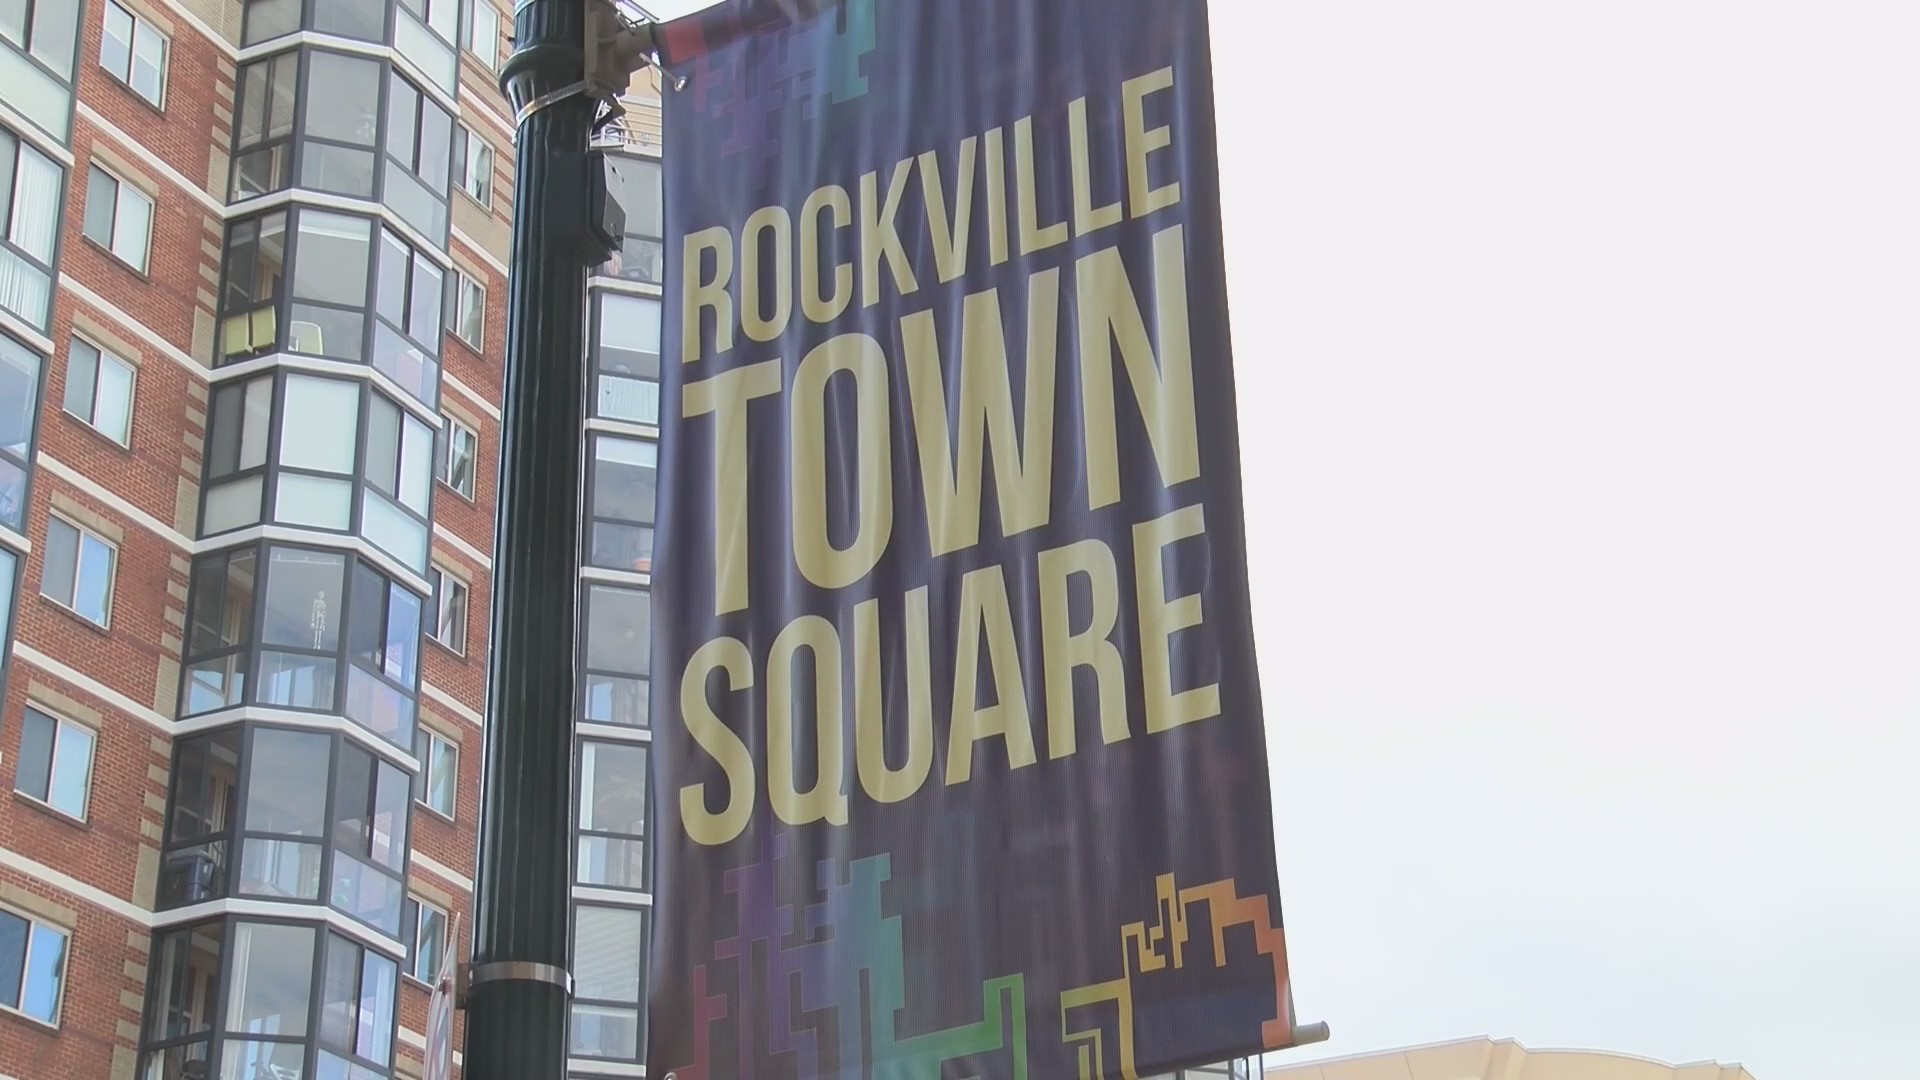 Rockville_revitalization_0_20181120235108